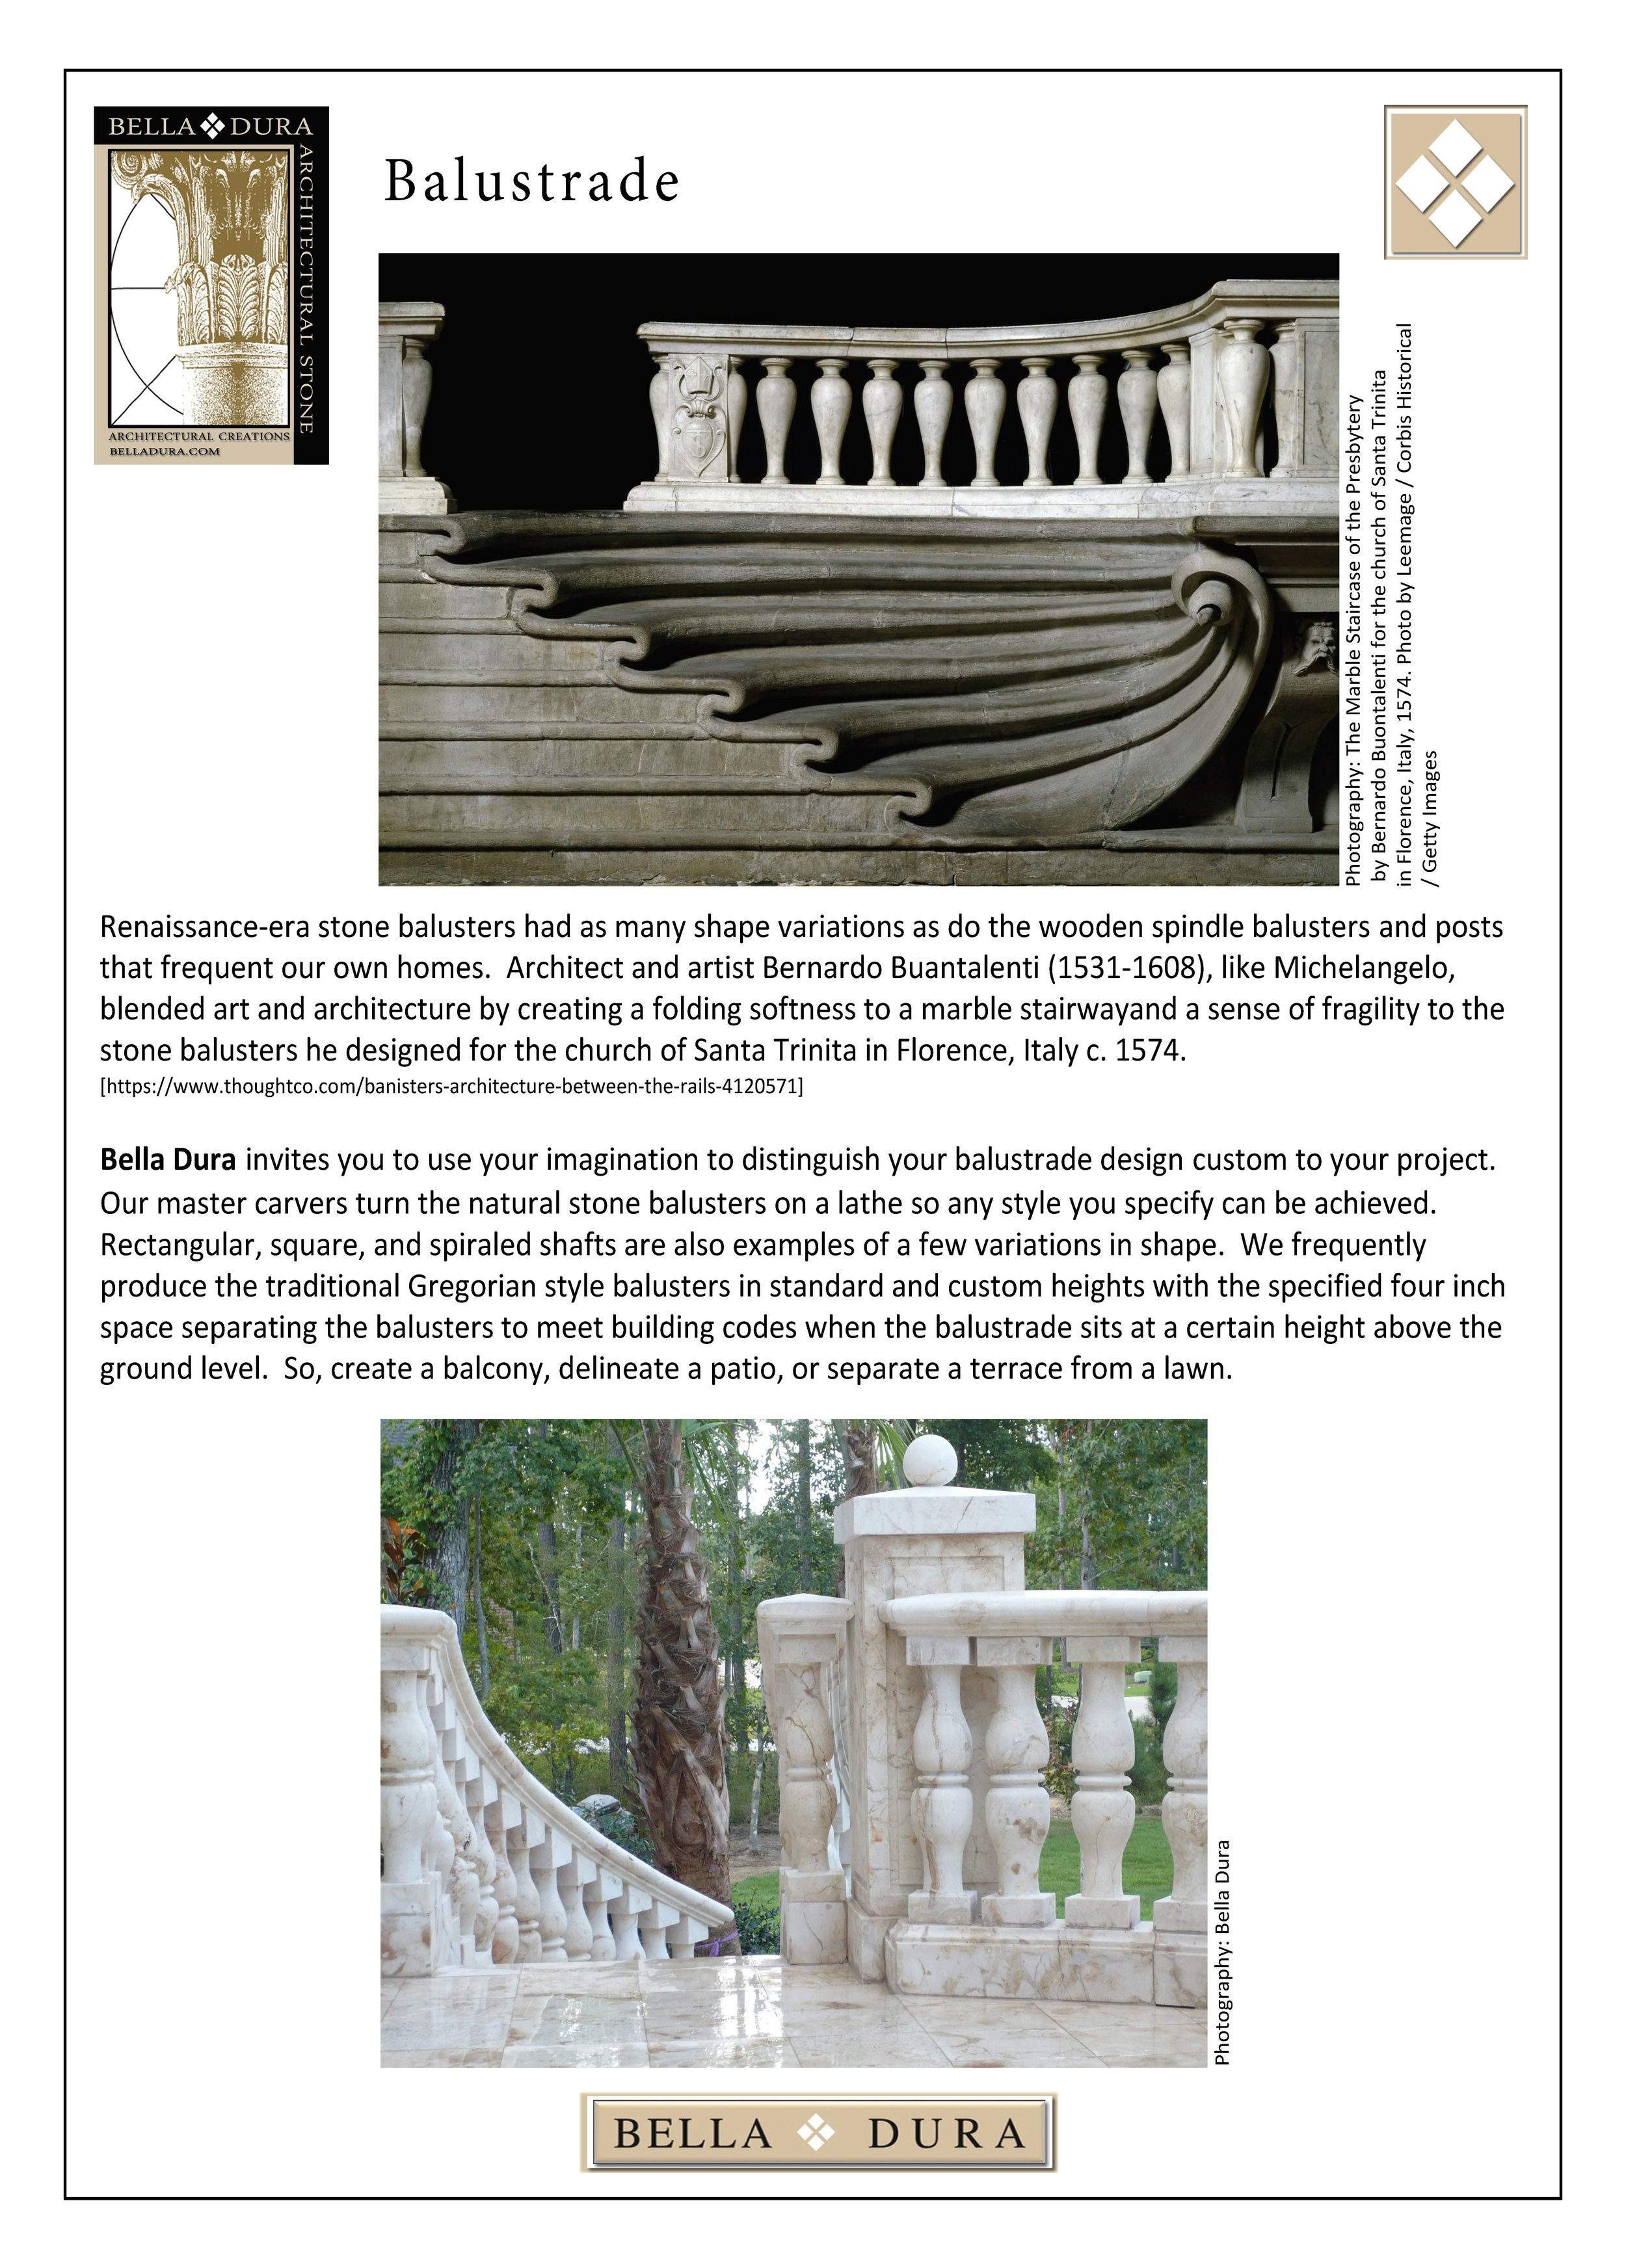 1.Bella Dura Architectural Stone 3, 2014 - DEC. 16, 2014. Copy 13T_Baluster_1.jpg